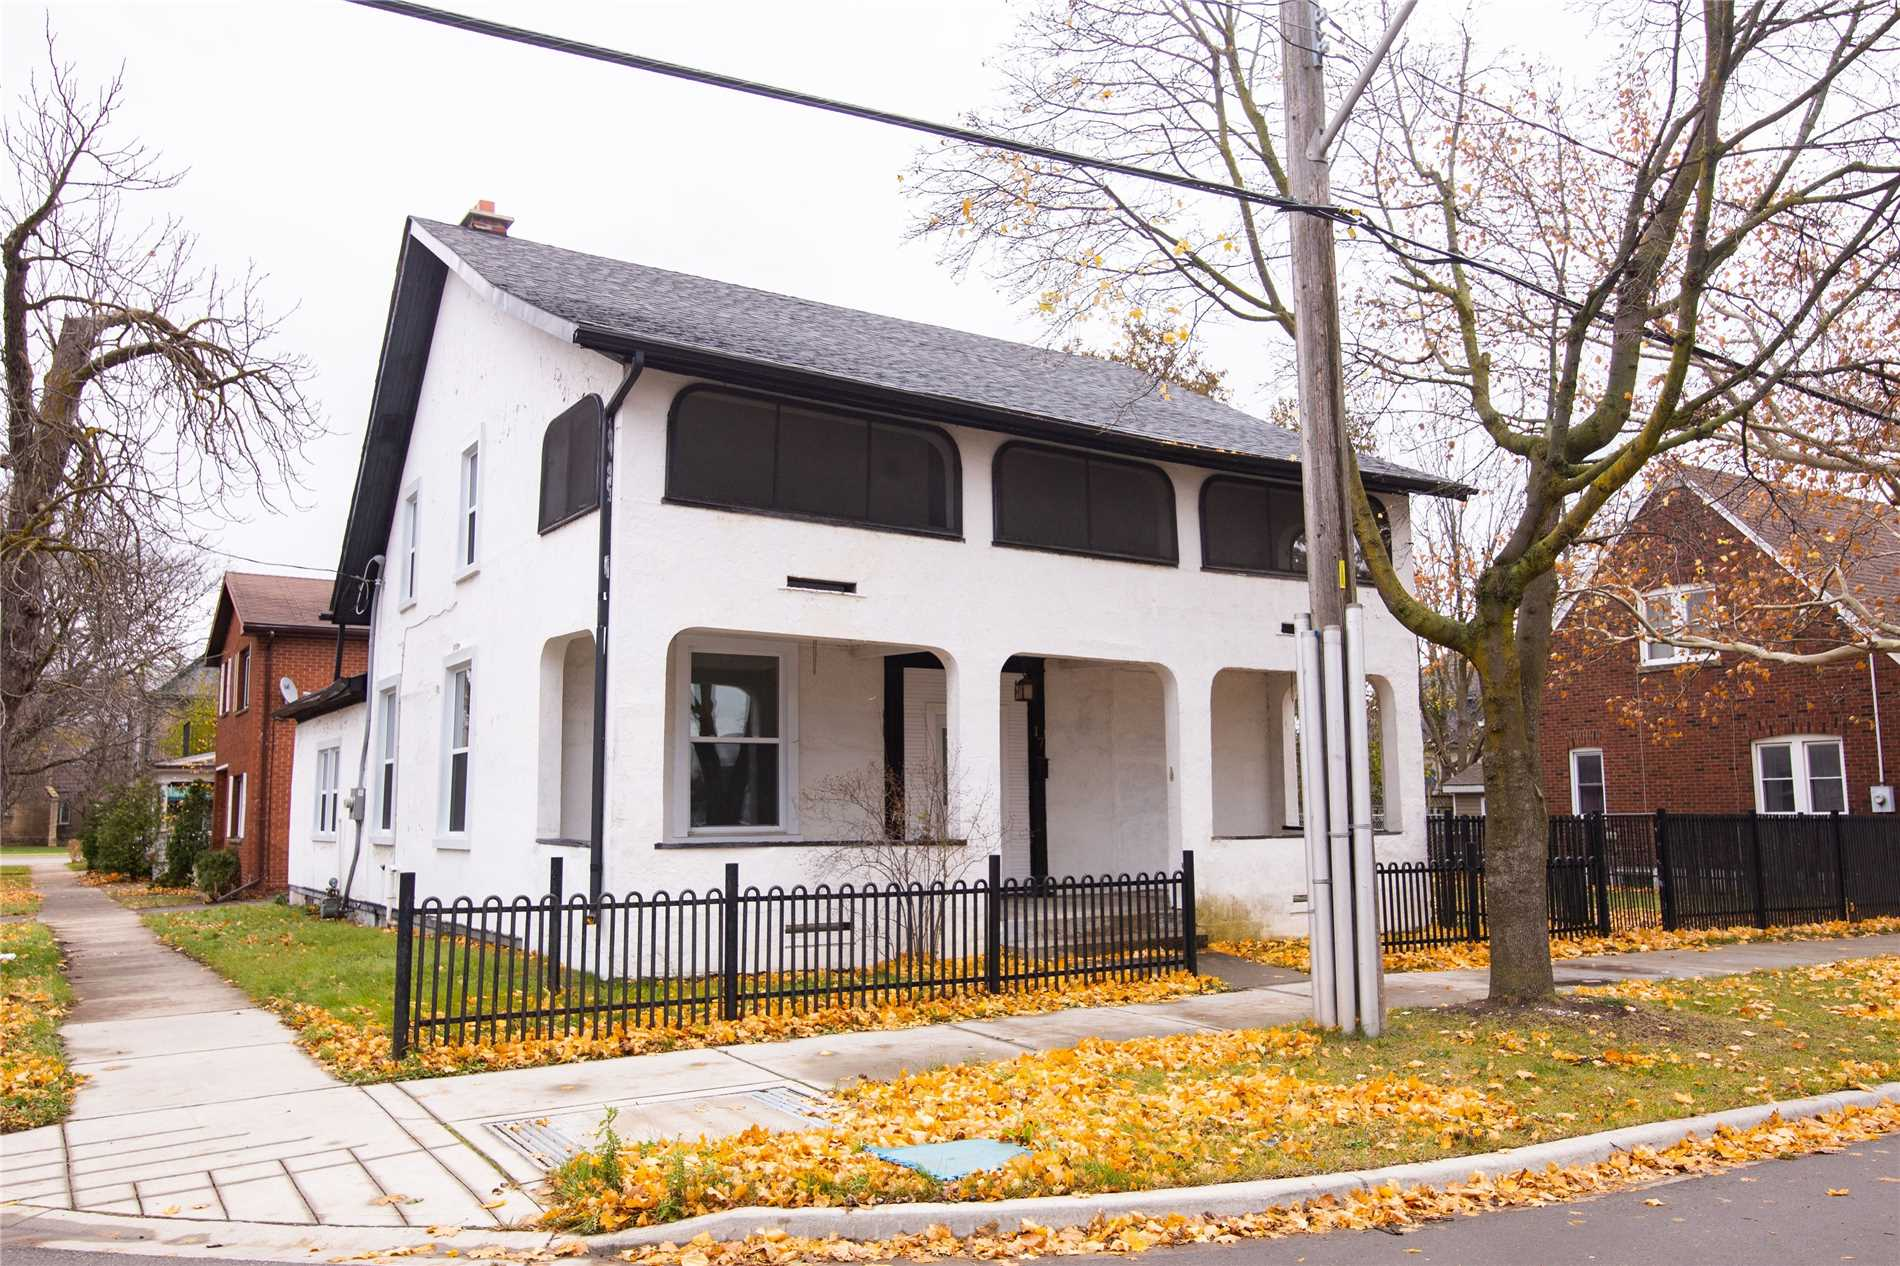 pictures of 17 William St, Brantford N3T 3K2